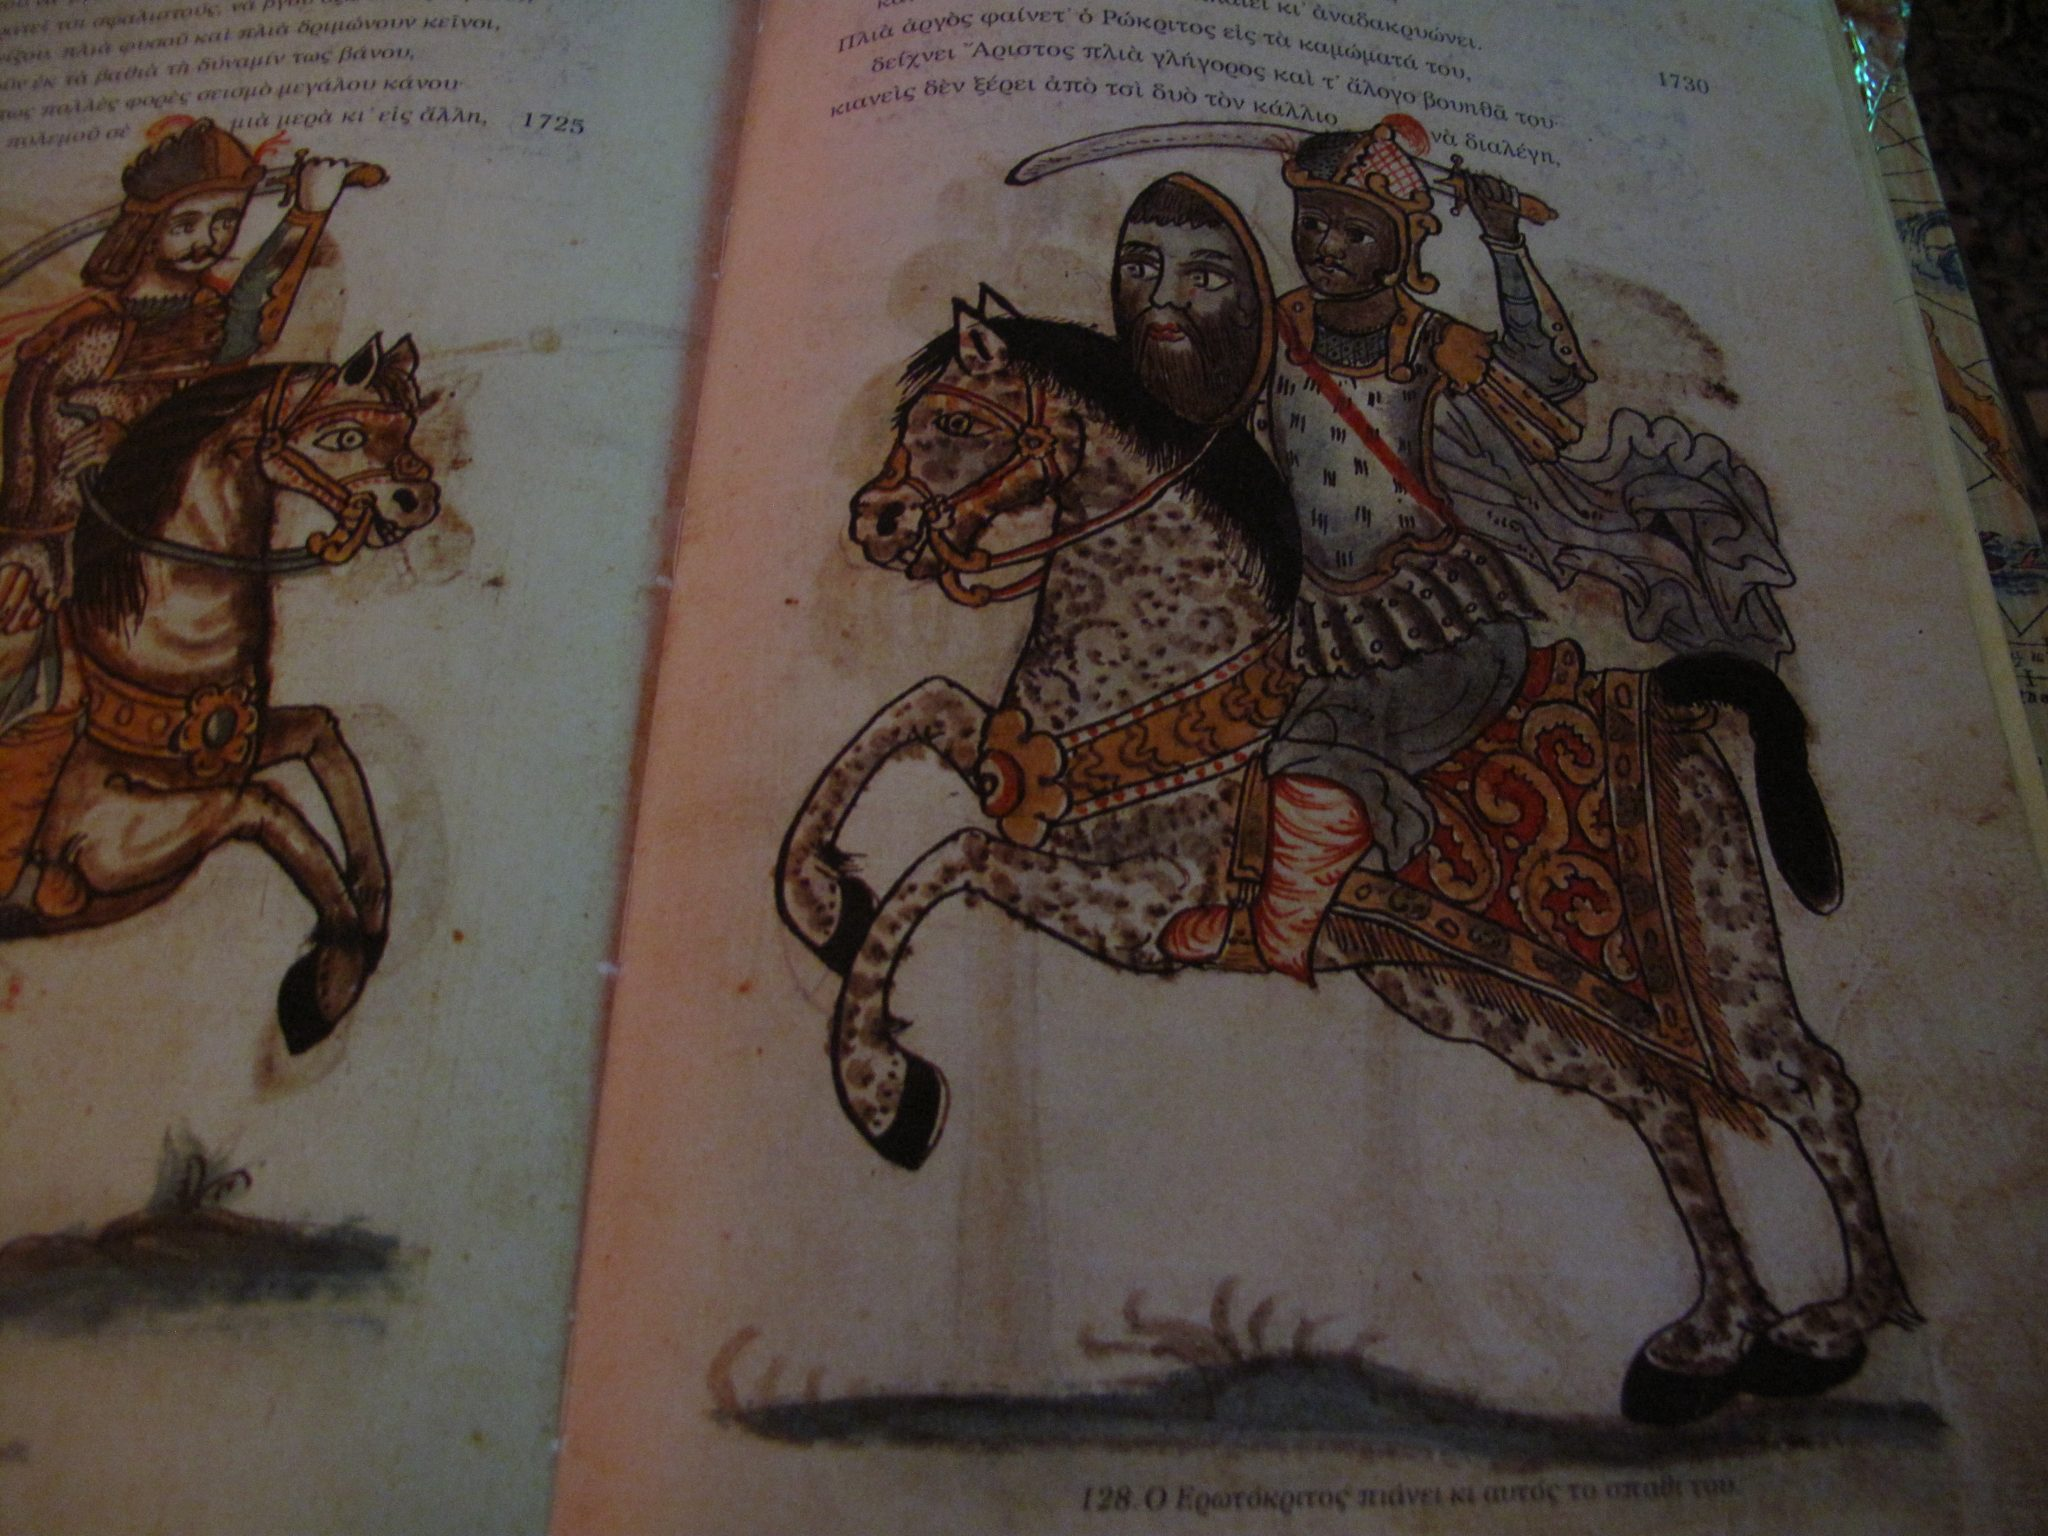 p.176.r Erotokritos charge with his saber and his small shield to his other hand. Again we have the model of a Byzantine cavalry man using a curved sword and a small shield of 30 cm in diameter.